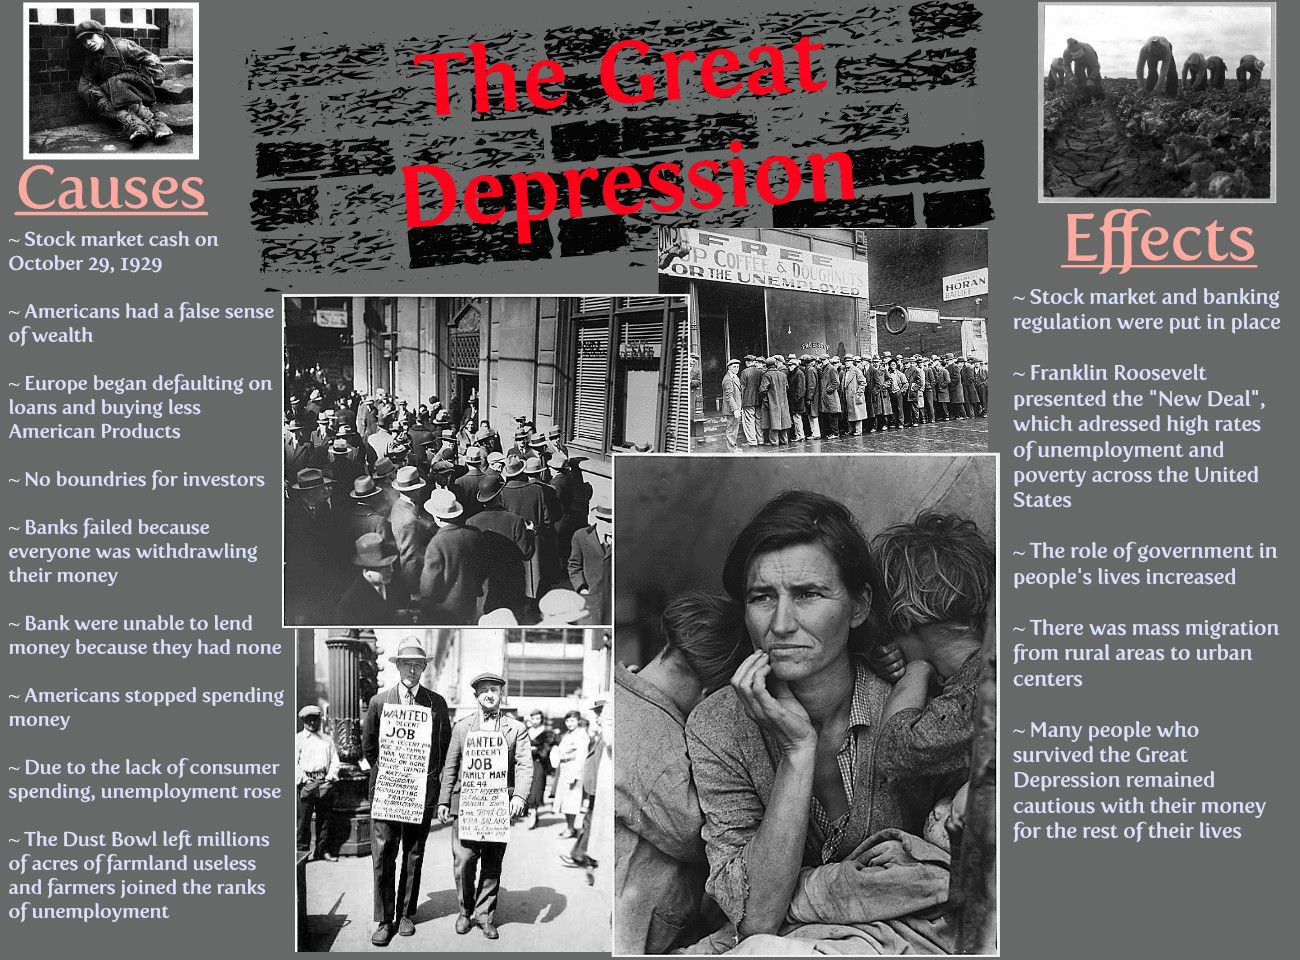 an analysis of the effects of the great depression Learn more about the great depression of the 1930s, including the primary effects, causes, facts, and comparisons to today.